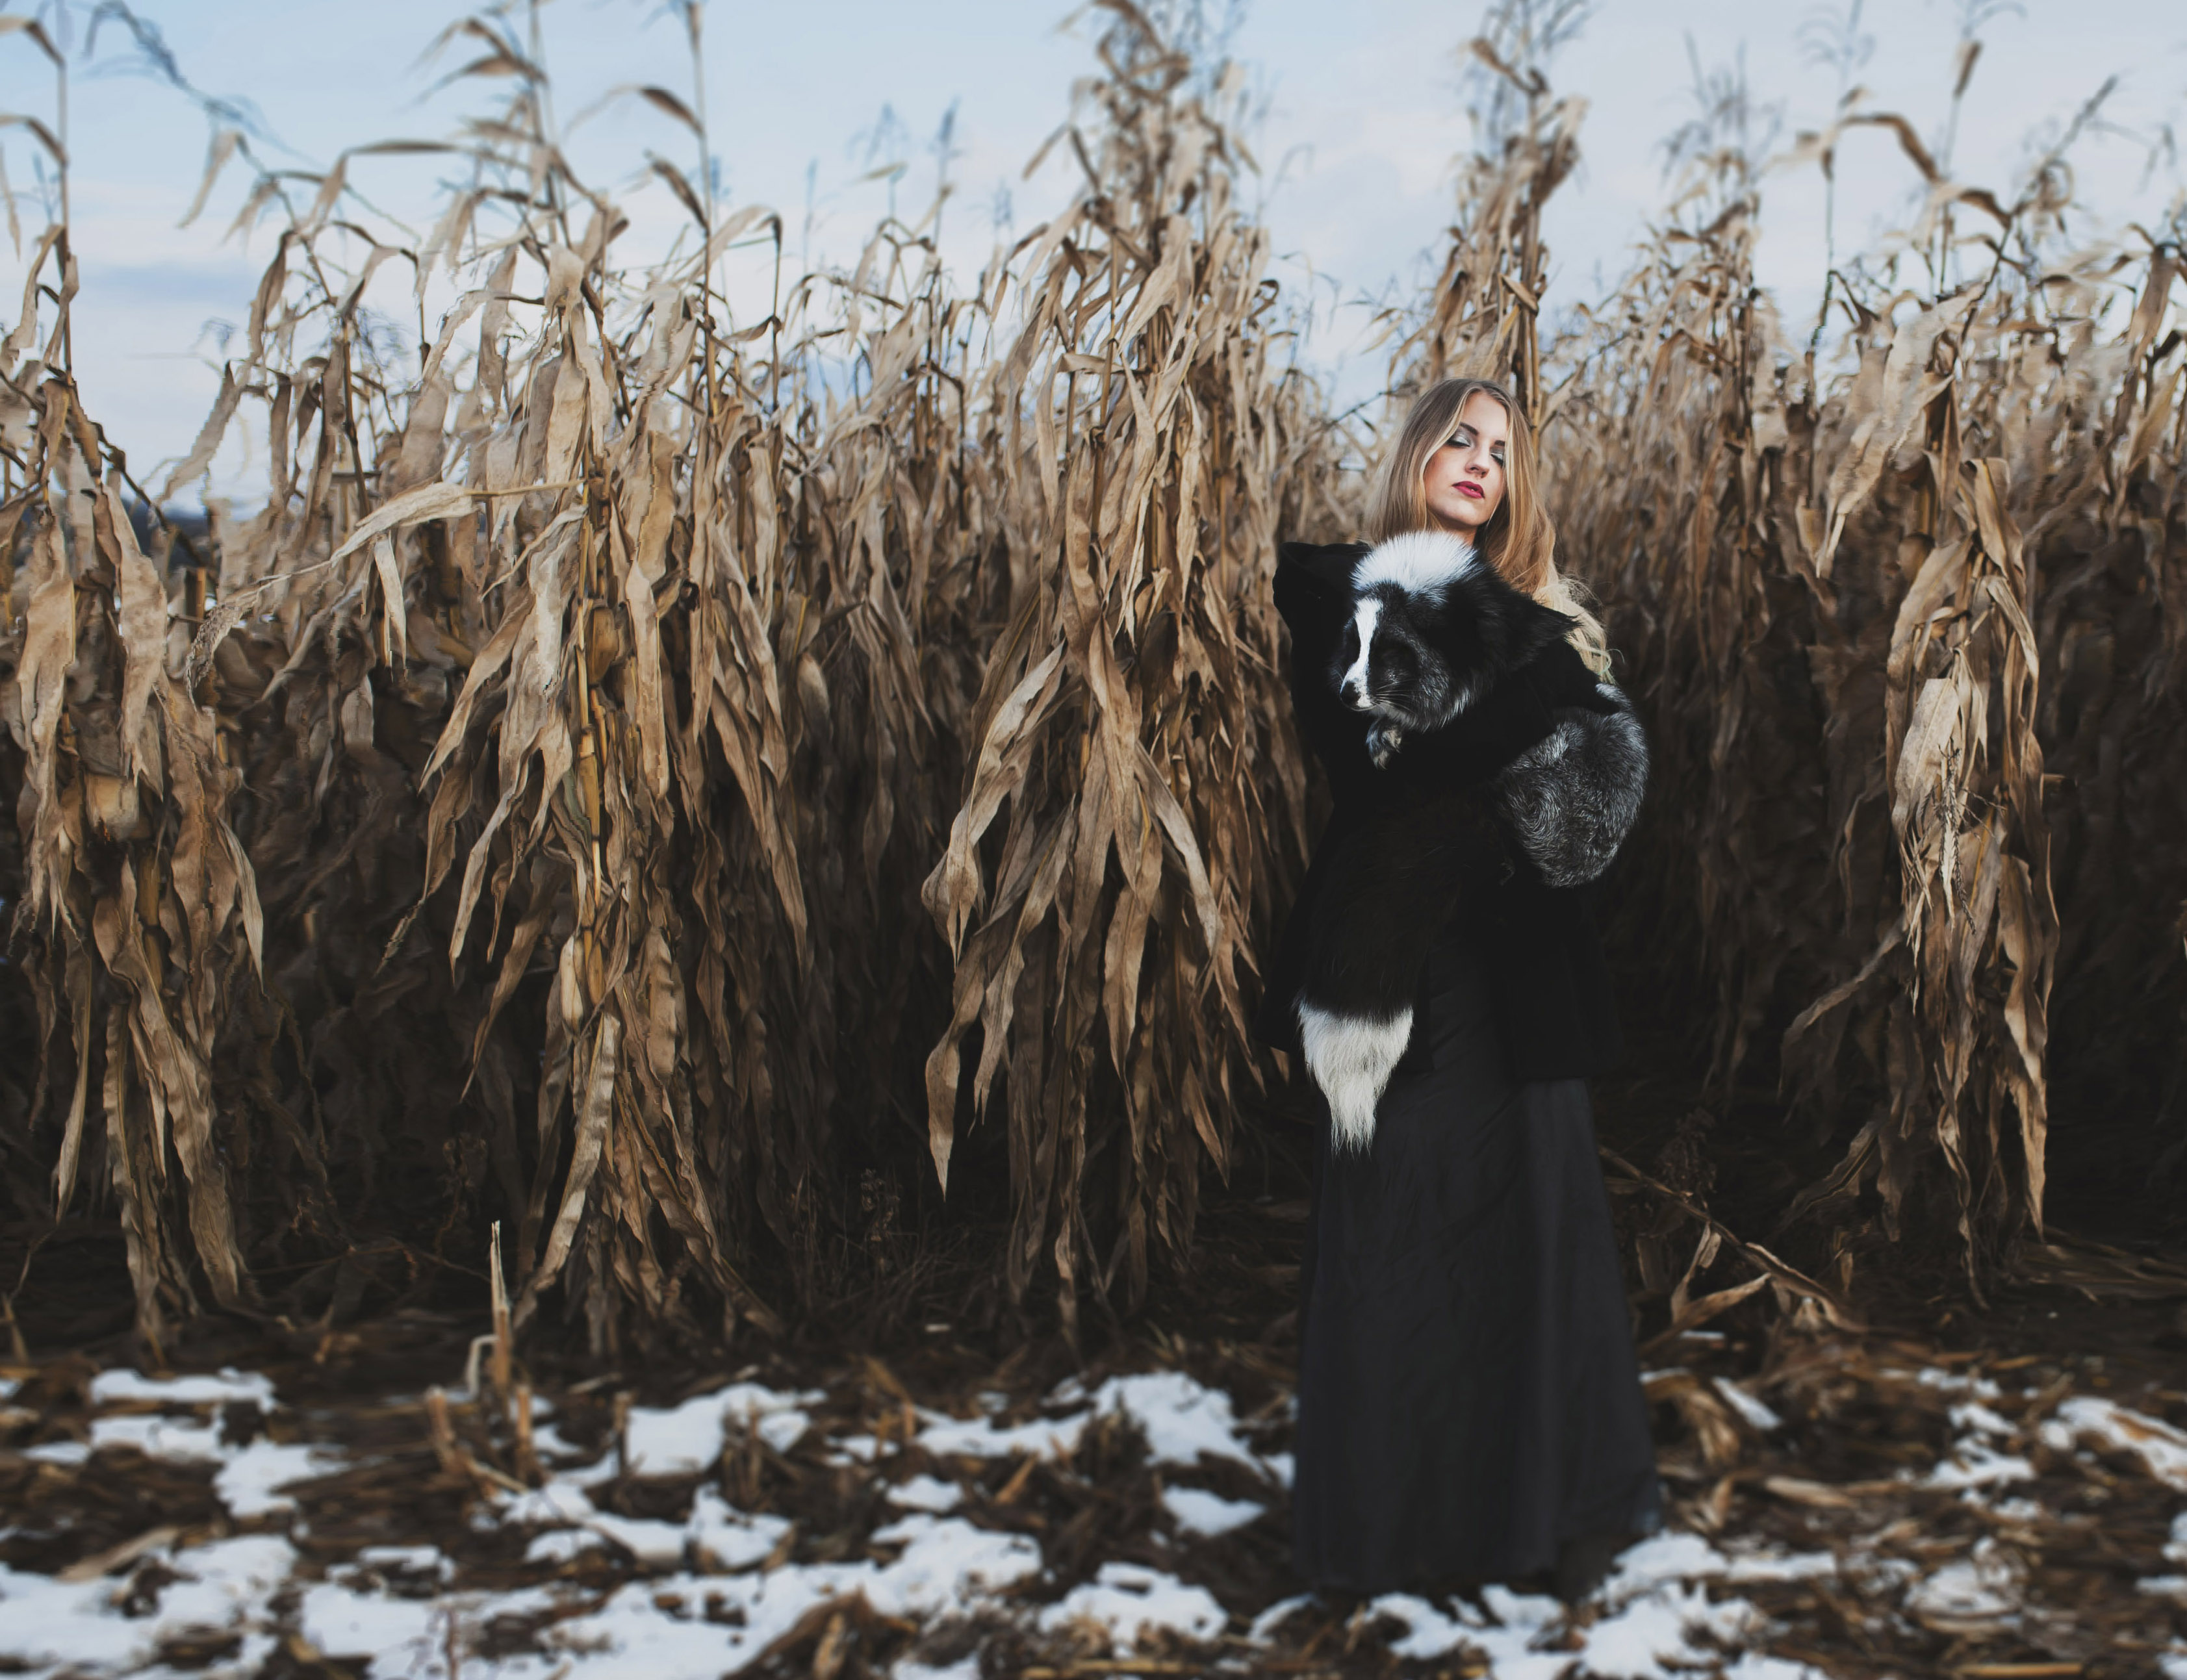 the fairytale of a girl who found a fox in a corn field